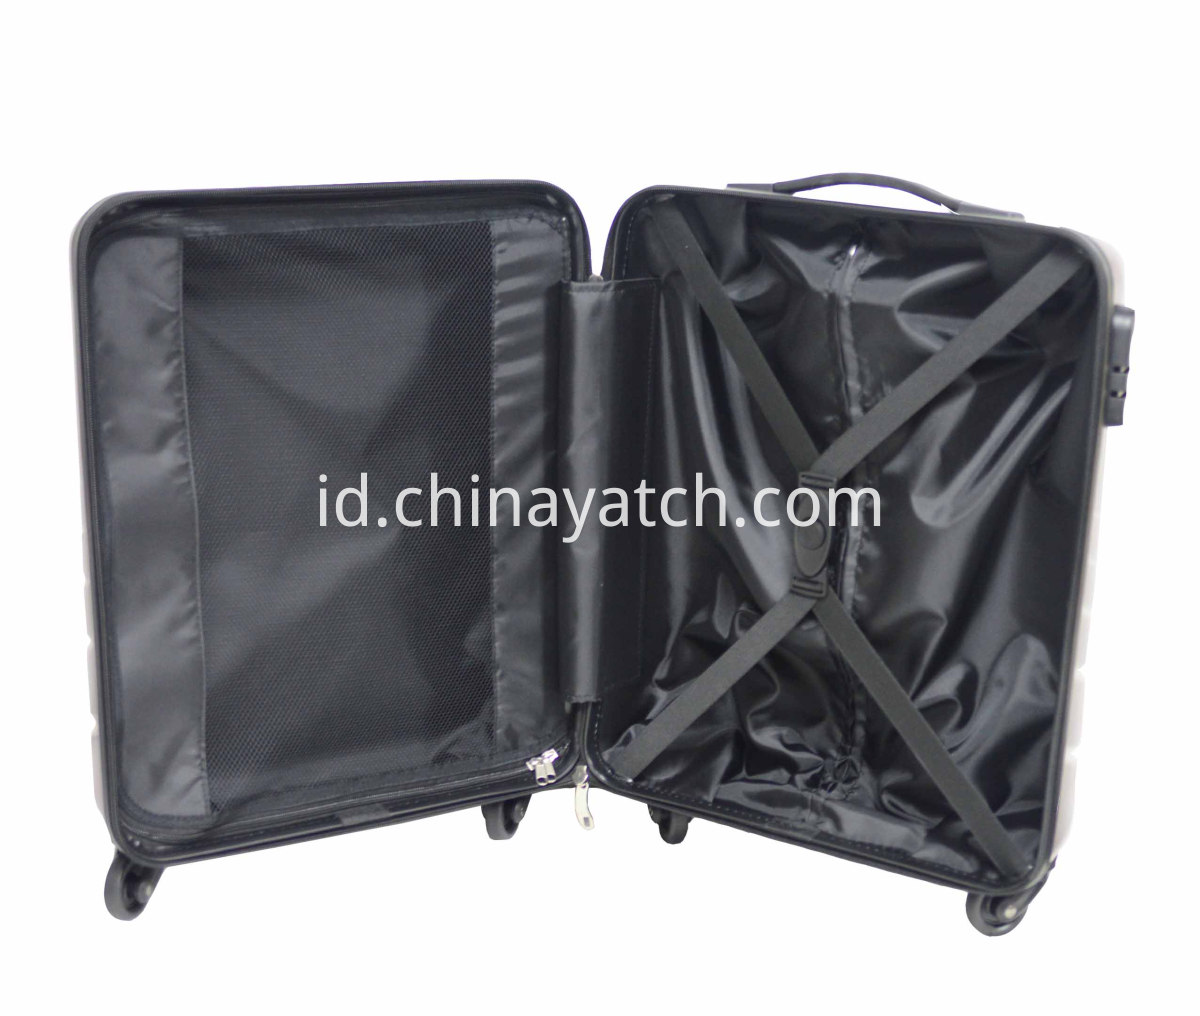 Durable alloy luggage